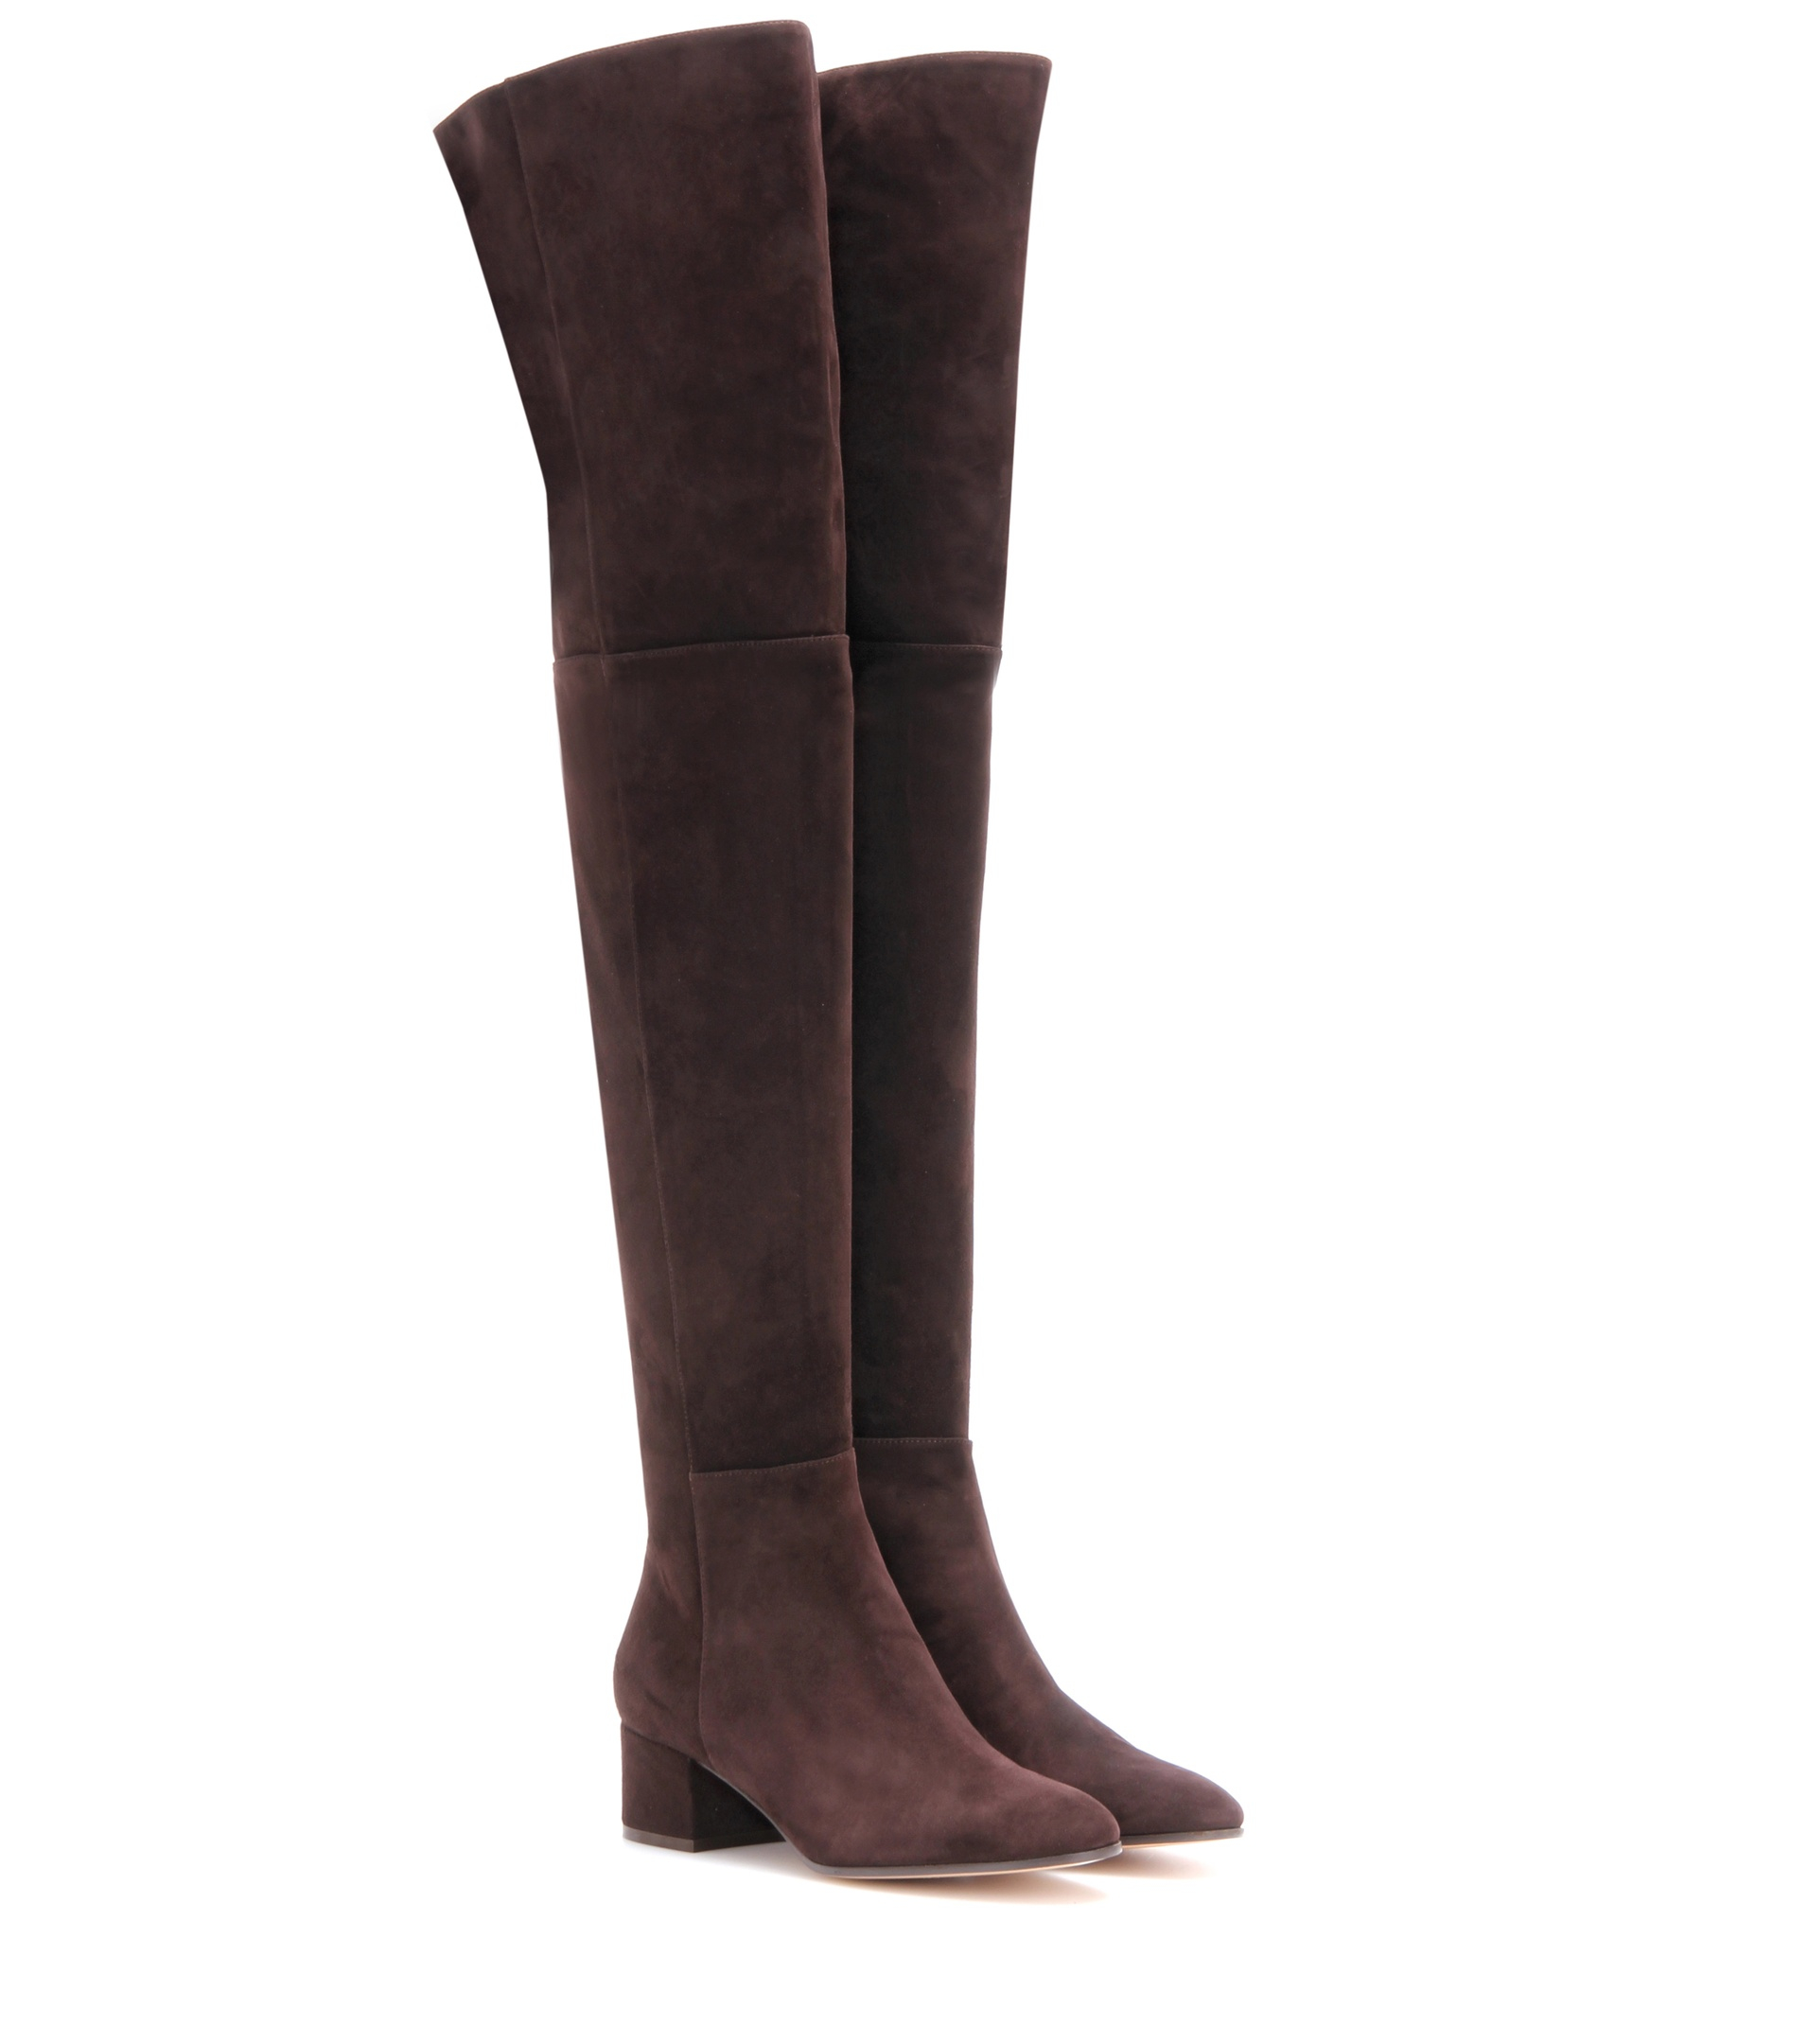 gianvito rolling mid the knee suede boots in